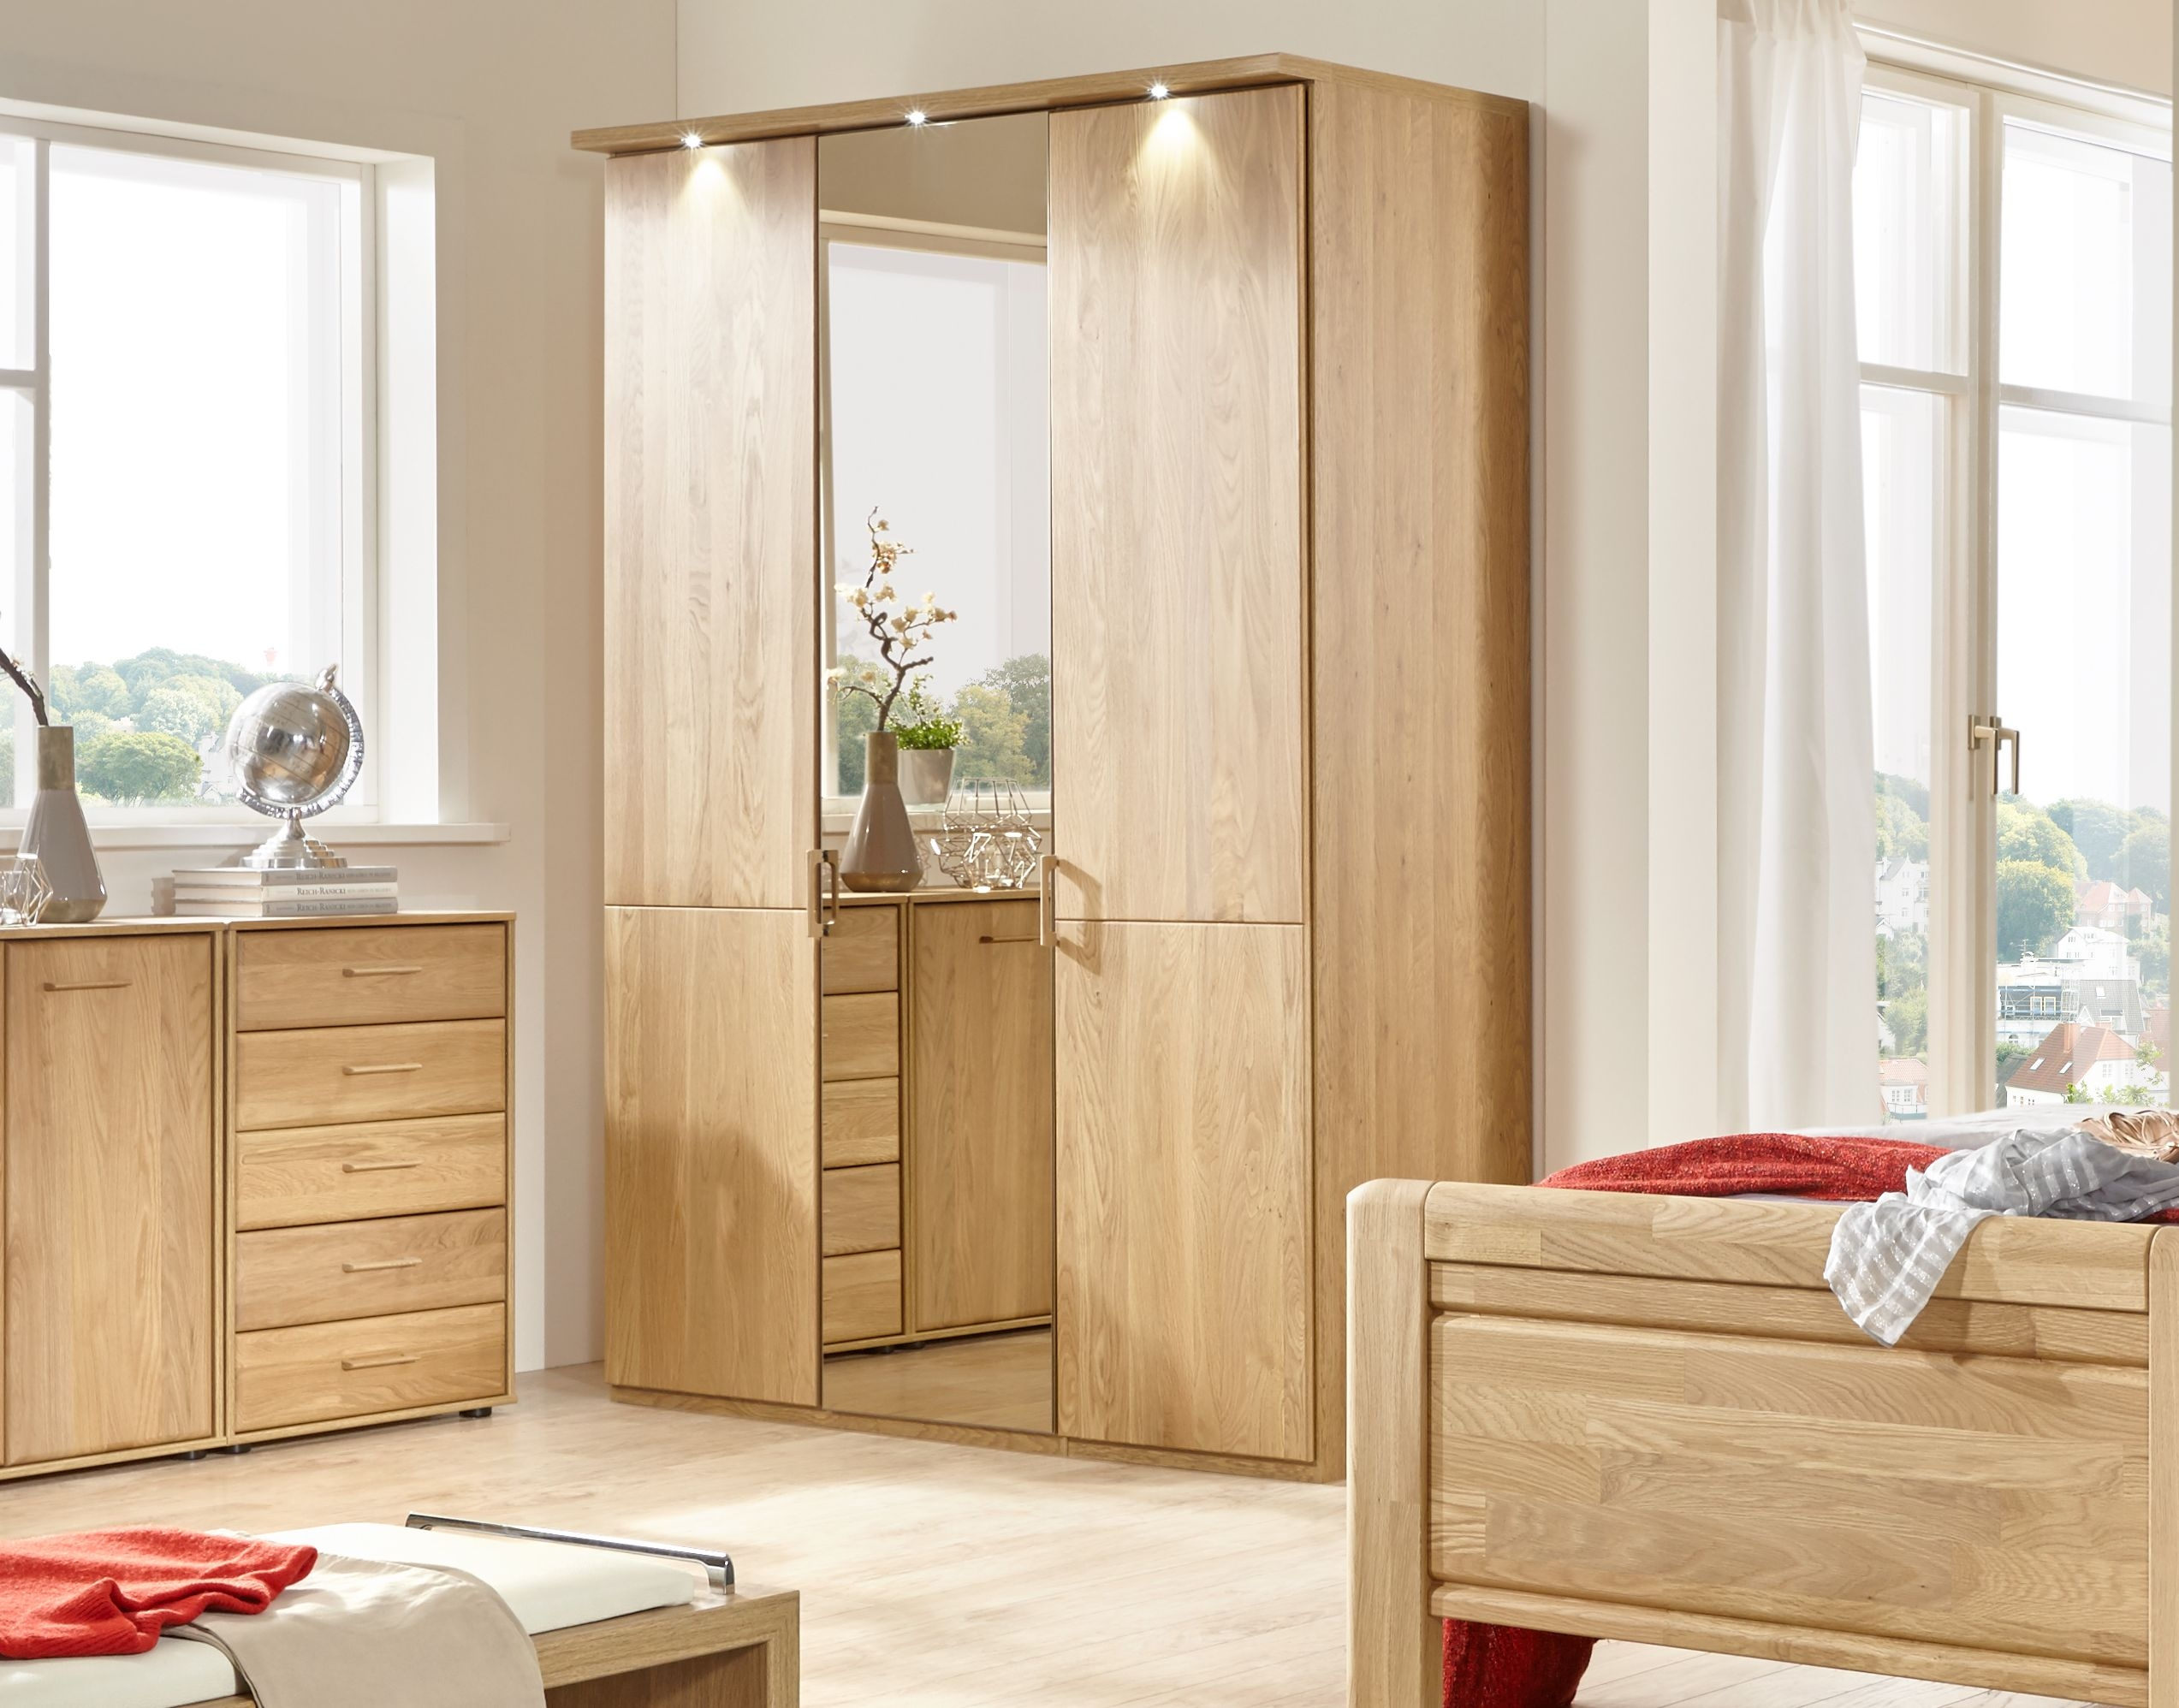 Wiemann Lido 5 Door 3 Mirror Wardrobe in Oak - W 250cm